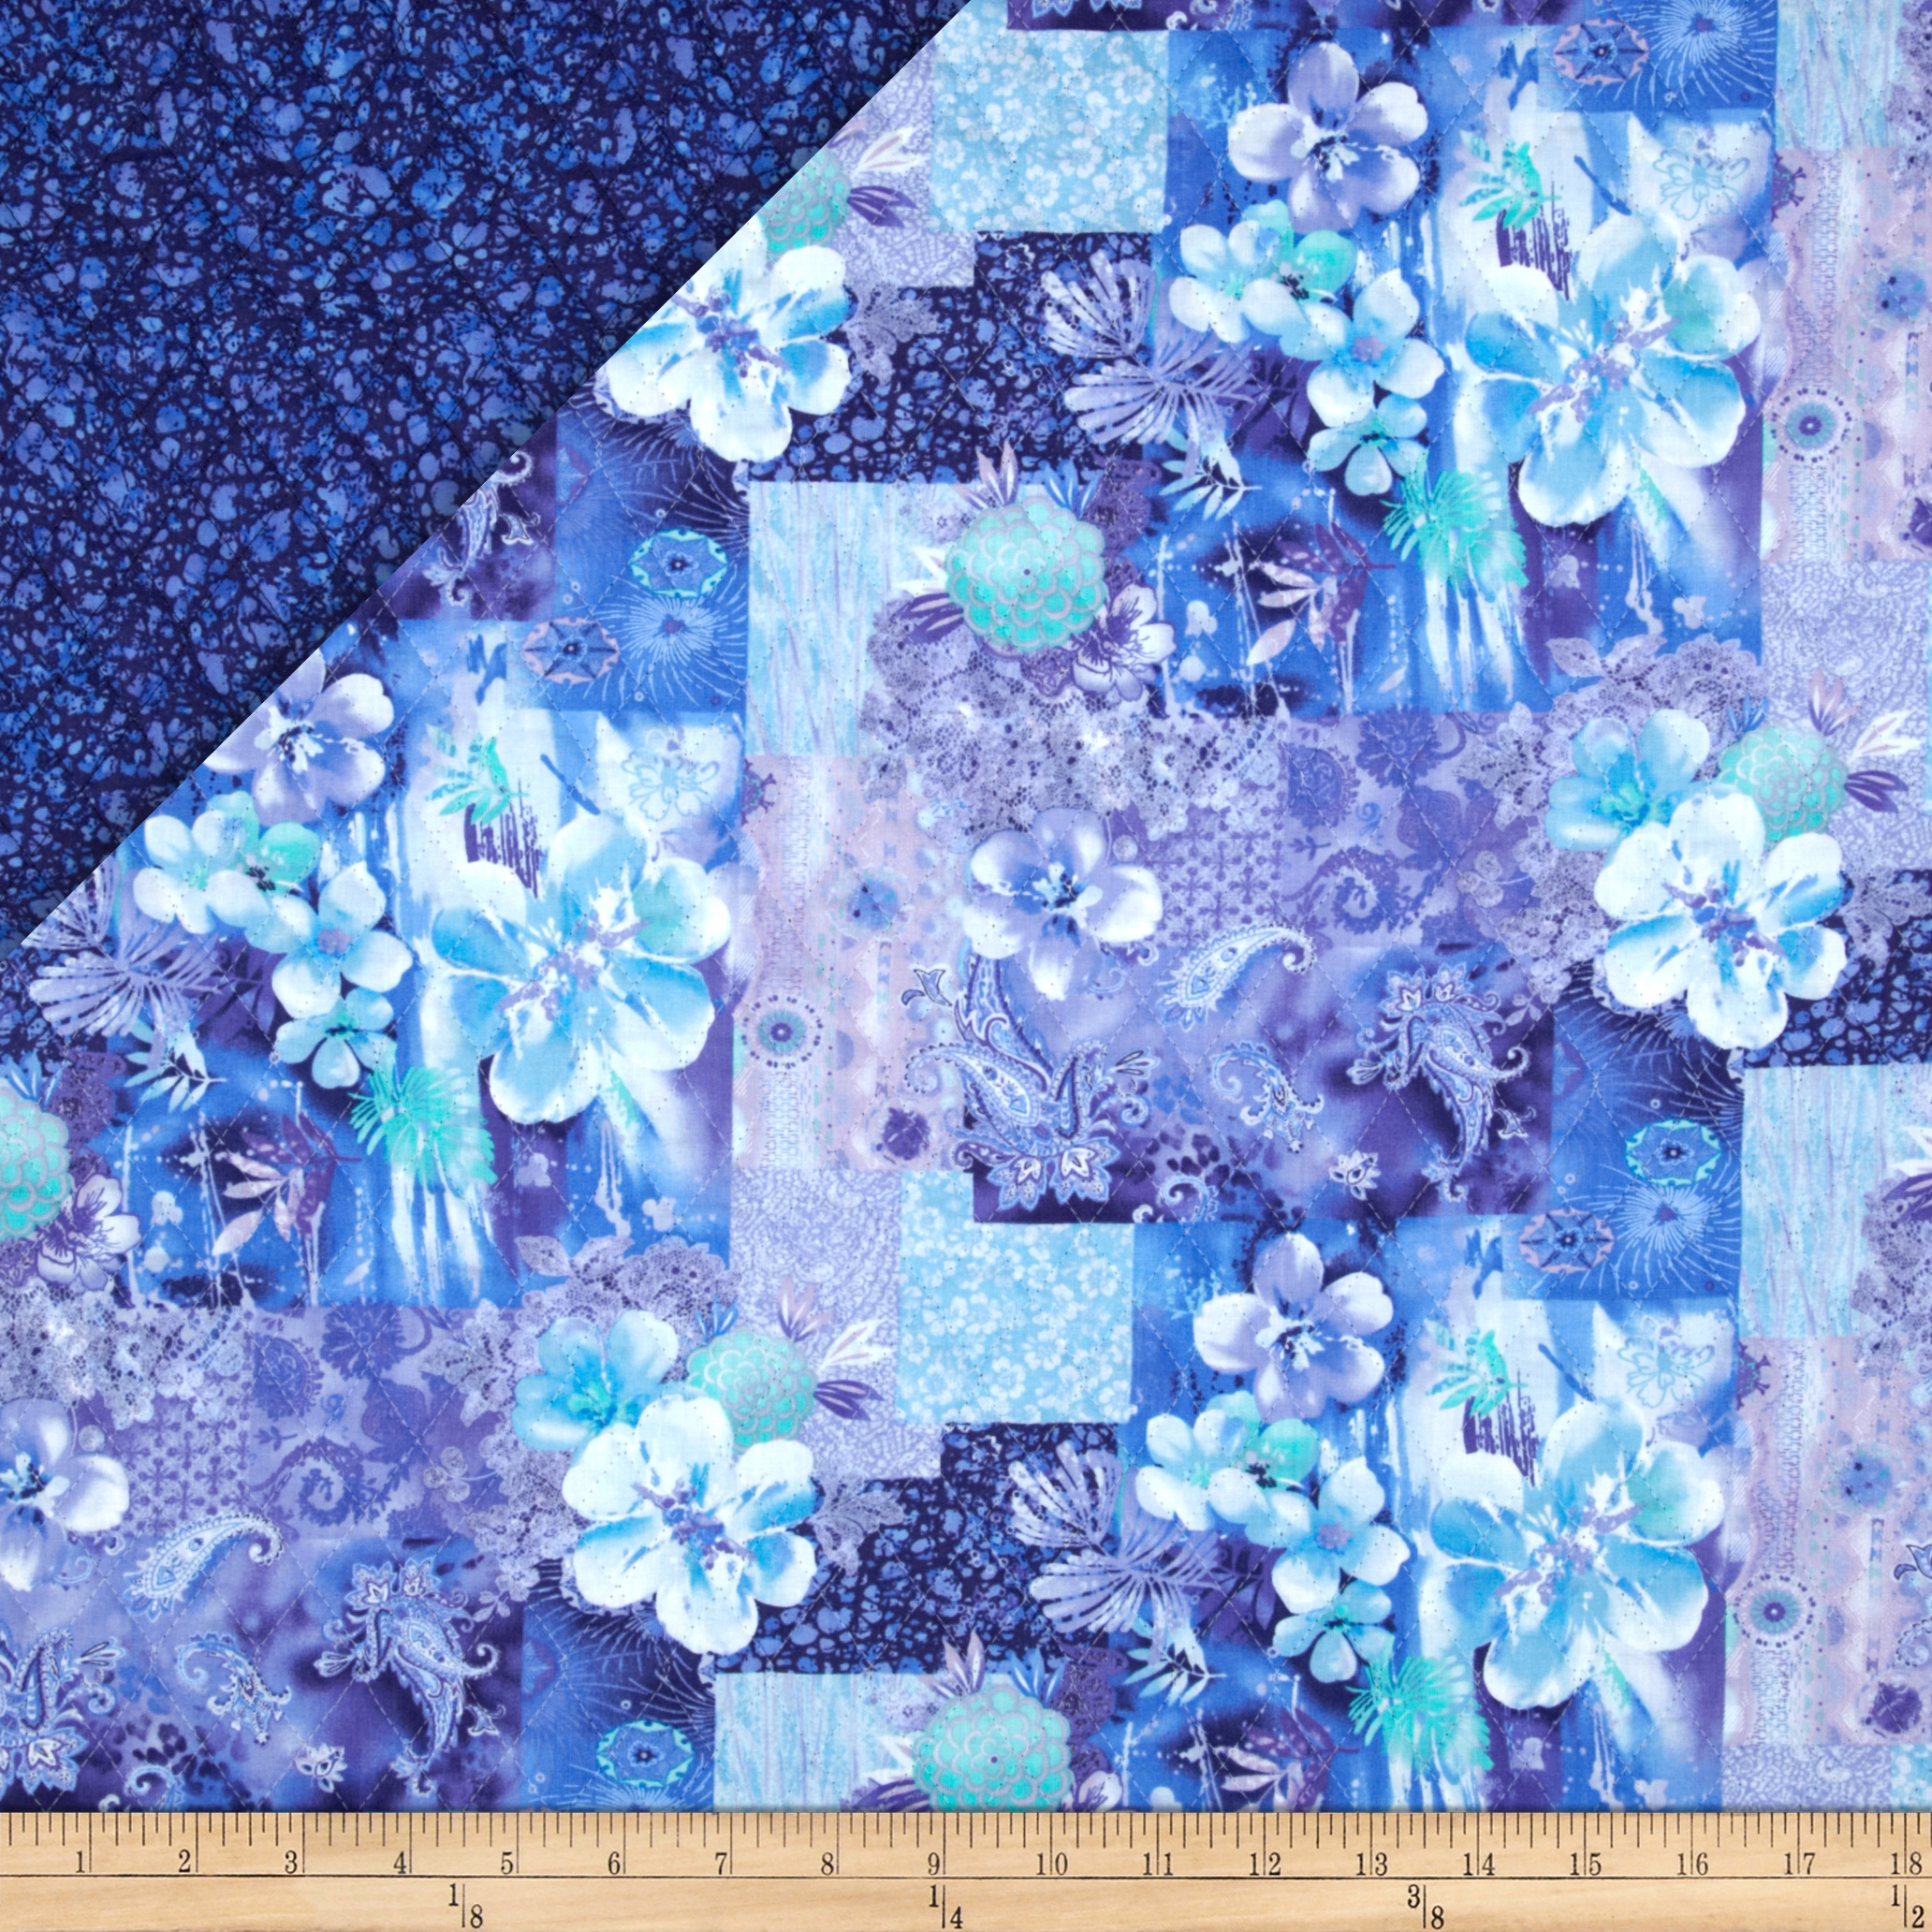 Lagoon Double Faced Quilted Floral Paisley Blue/Aqua Fabric